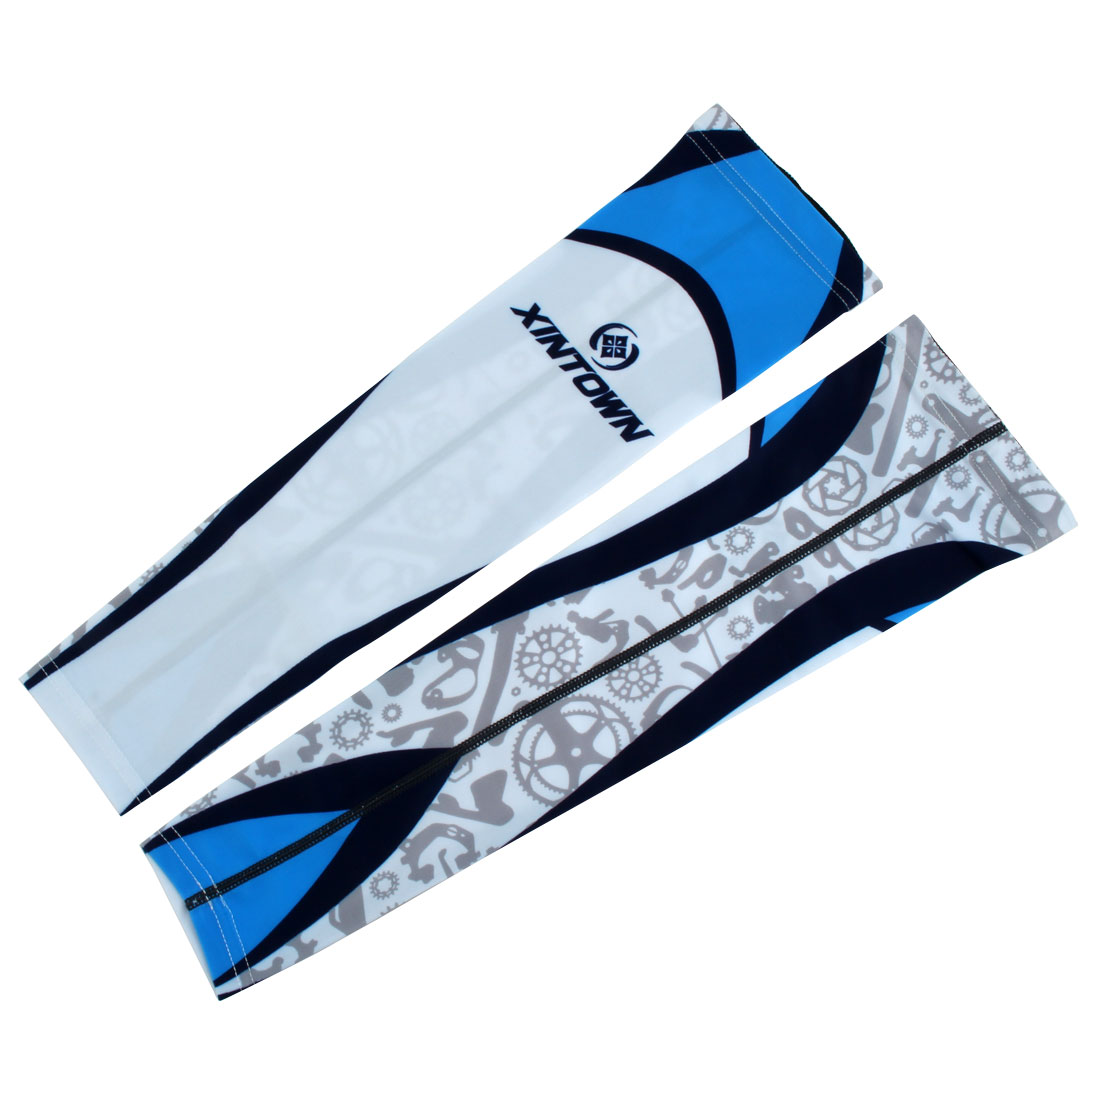 XINTOWN Authorized Unisex Cycling Football Arm Sleeves Cover Warmer #4 L Pair by Unique-Bargains